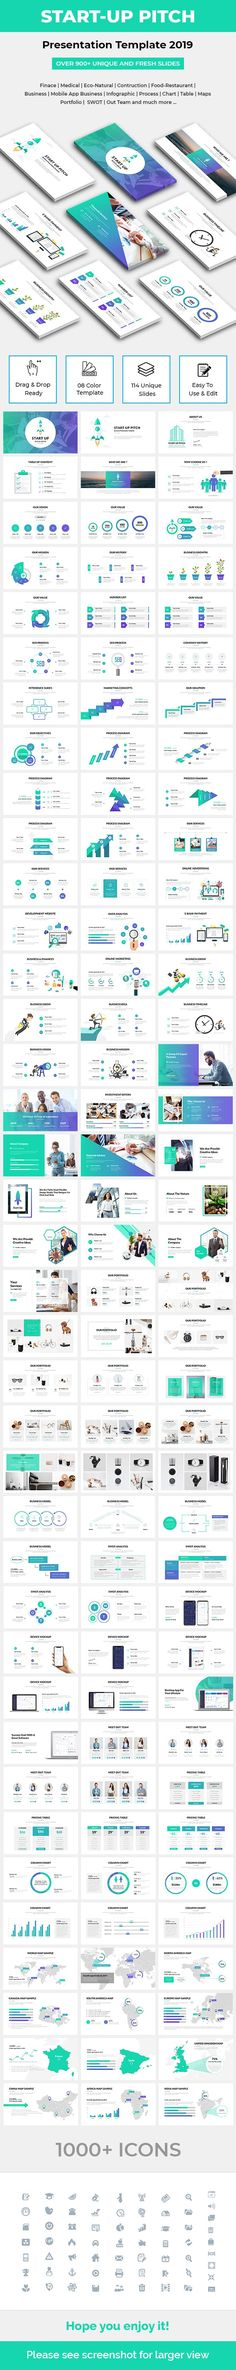 Buy Start-Up Pitch Deck Keynote Template 2019 by on GraphicRiver. Start-Up Pitch Deck Keynote Template 2019 General Features 114 well designed slides Full HD aspect ratio 08 Coo. Business Presentation Templates, Business Templates, Swot Analysis, Cool Themes, Keynote Template, Pitch, Infographic, Web Design, Deck